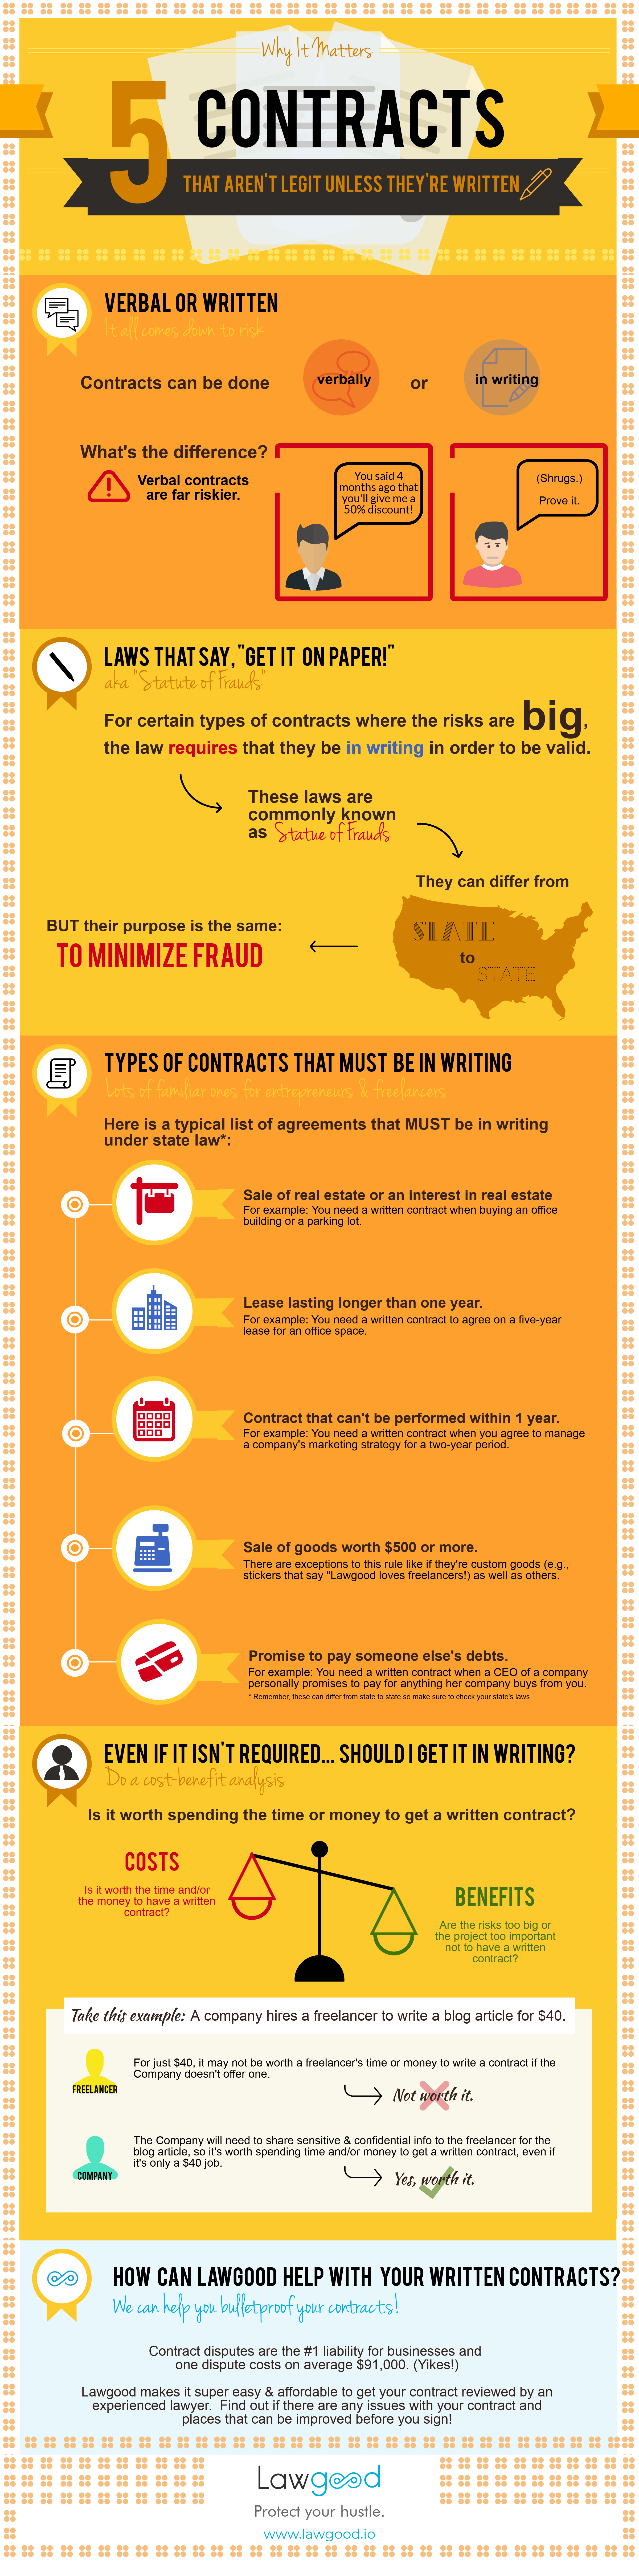 """There are certain contracts that MUST be in writing in order to be valid and enforceable. Make sure you that none of your """"verbal"""" contracts fall into one of these categories!"""